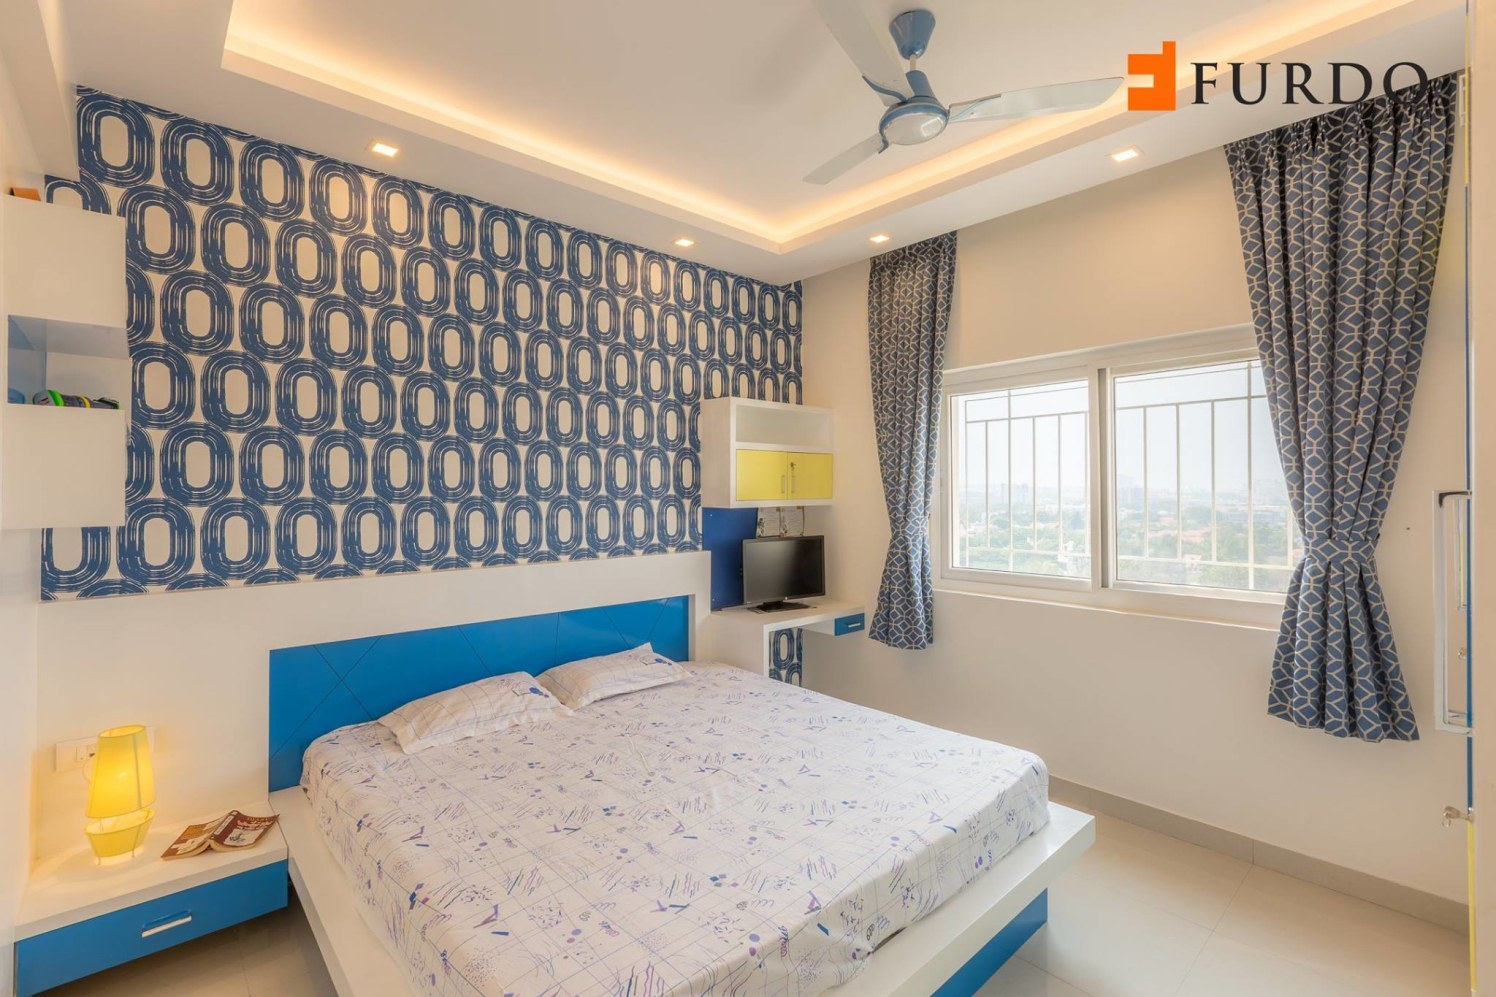 Kids Bedroom With Wall Art And Flase Ceiling by Furdo.com Bedroom Contemporary | Interior Design Photos & Ideas